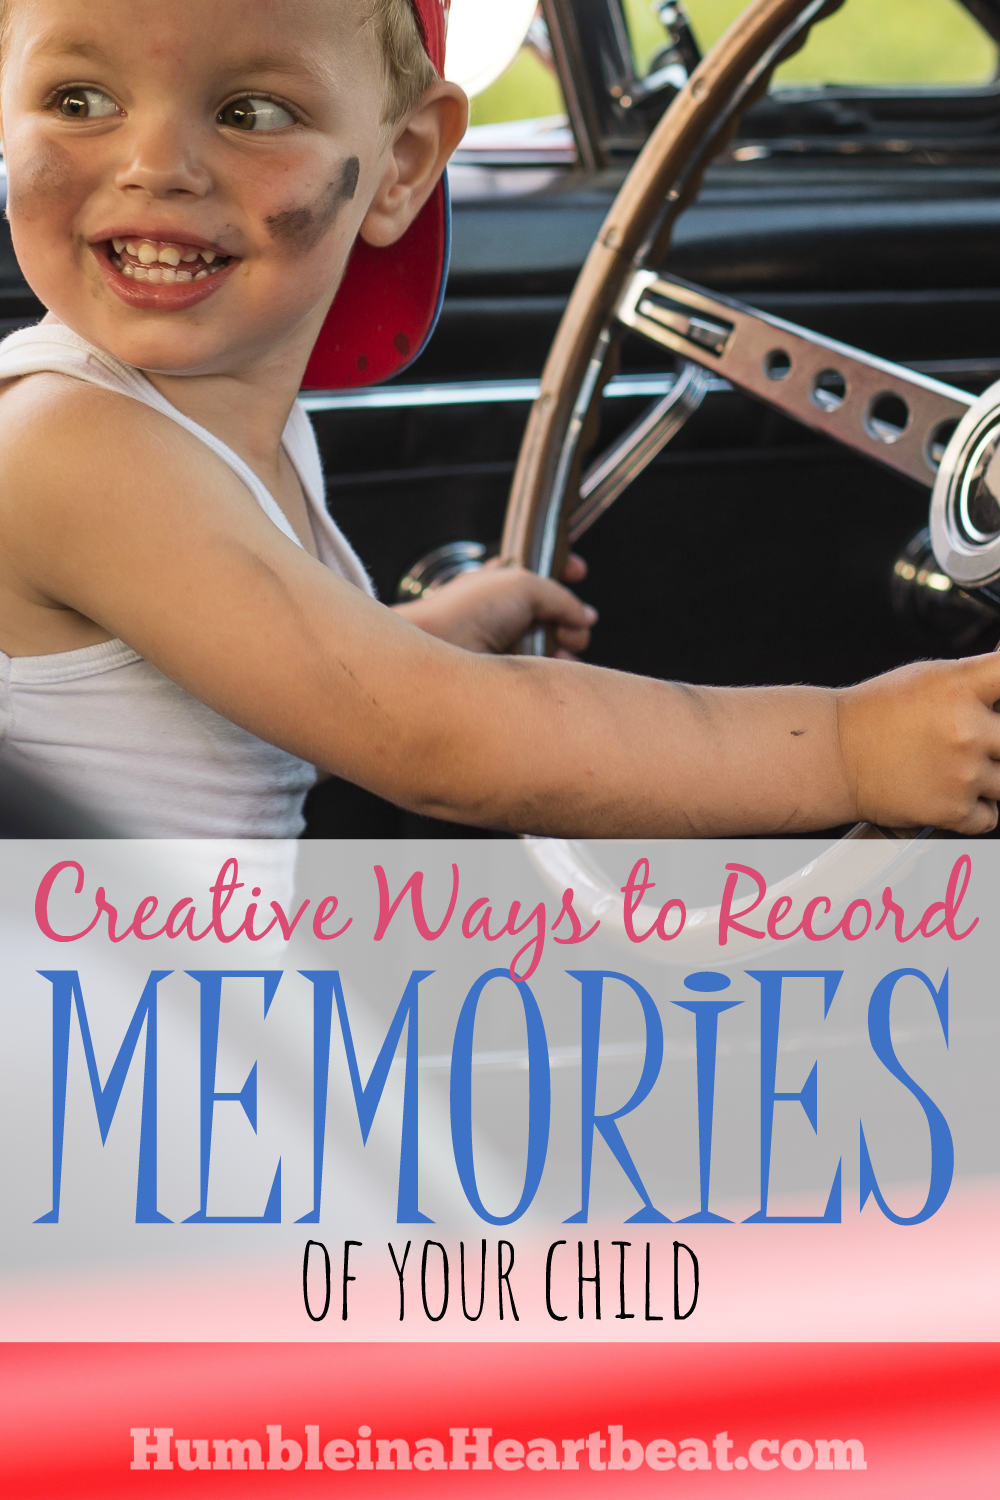 Life passes by so quickly, so take time now to record important memories of your child's life. You may have never even considered some of these ideas!